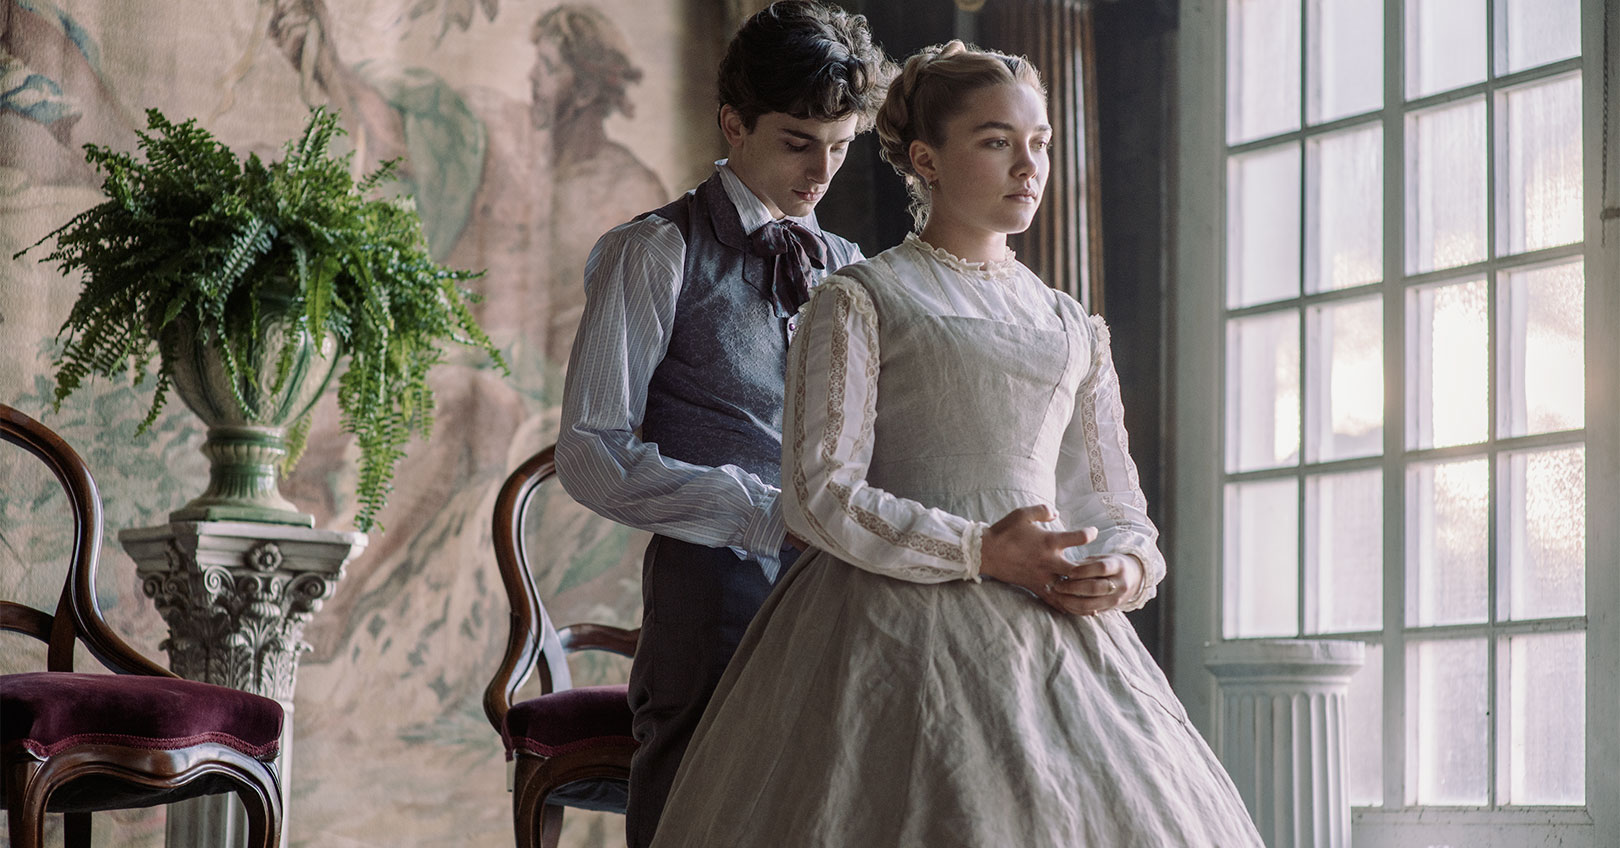 Little Women - Timothee Chalamet and Florence Pugh